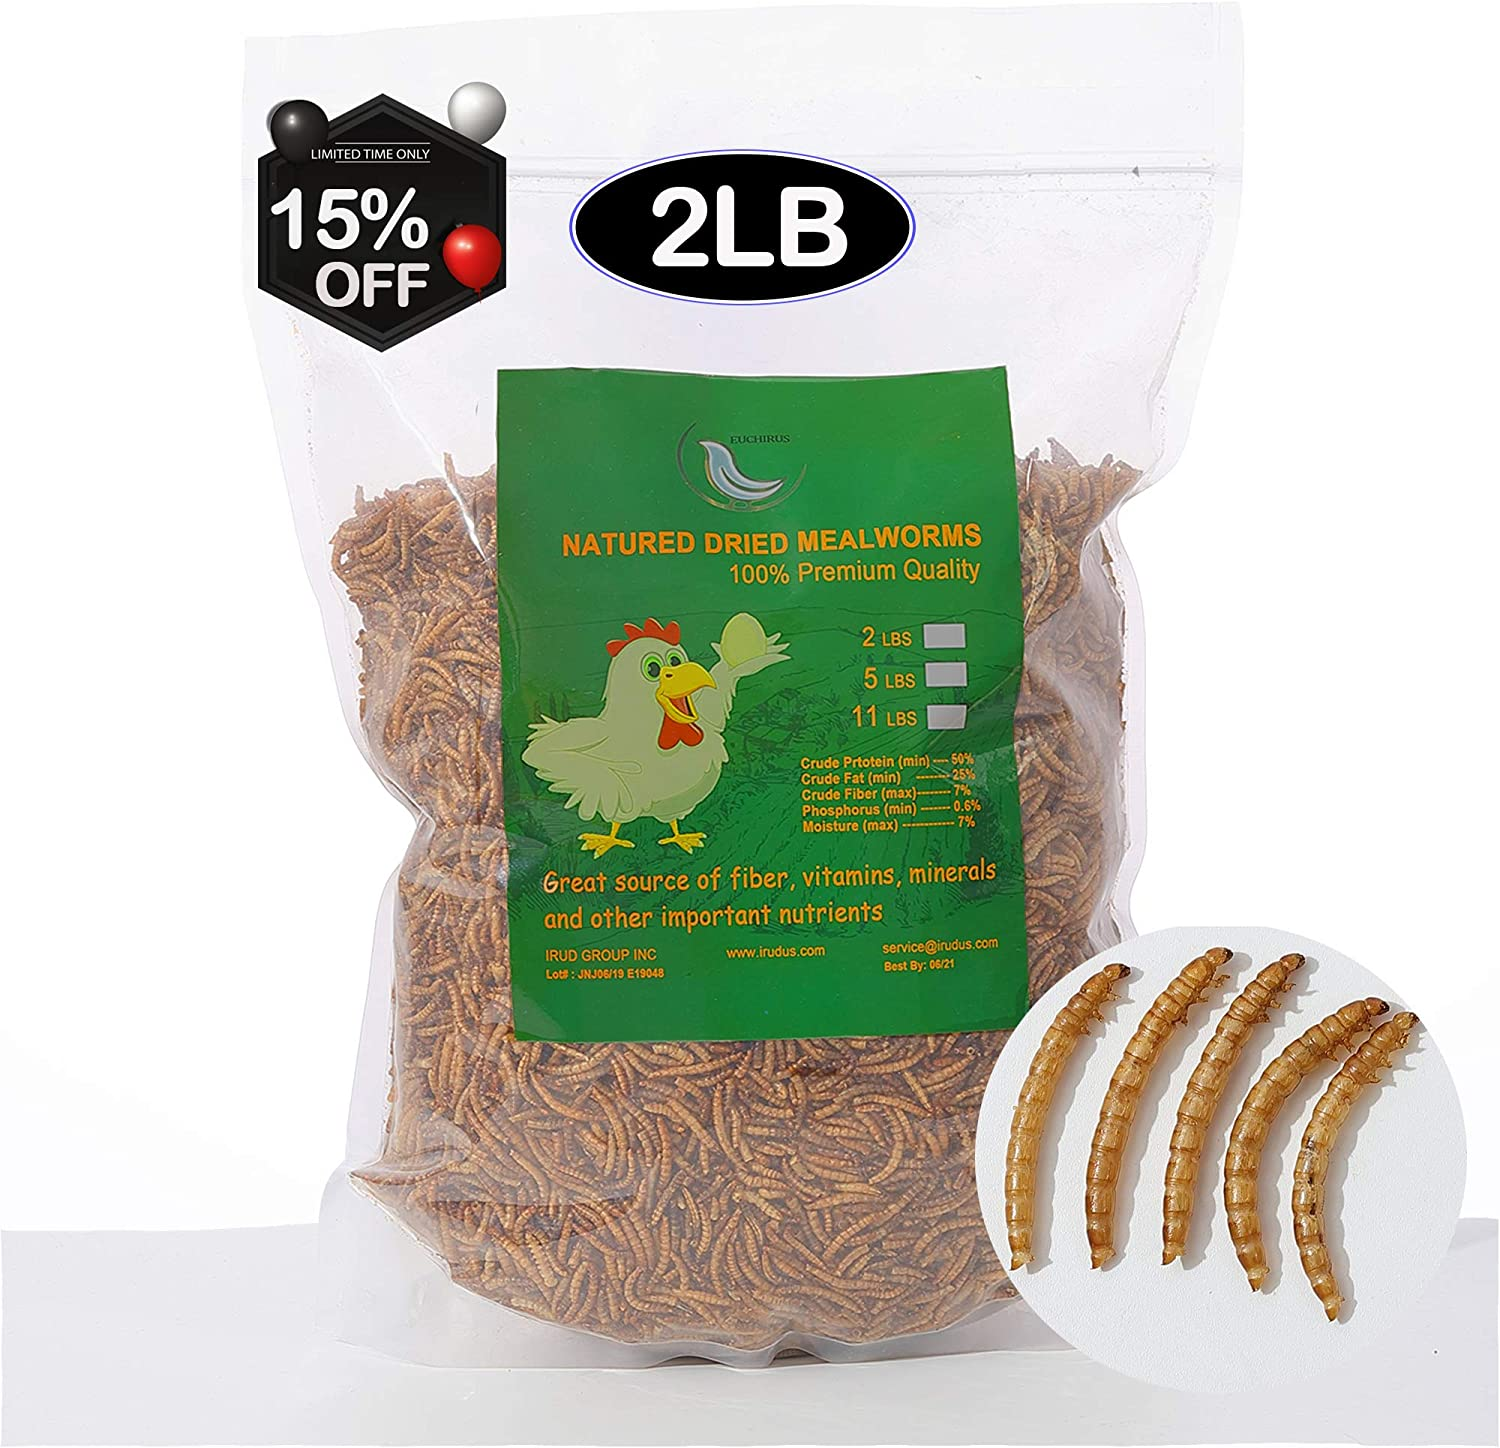 Euchirus 2 LBS Non-GMO Dried Mealworms for Wild Bird Chicken Fish,High-Protein,Large Meal Worms.